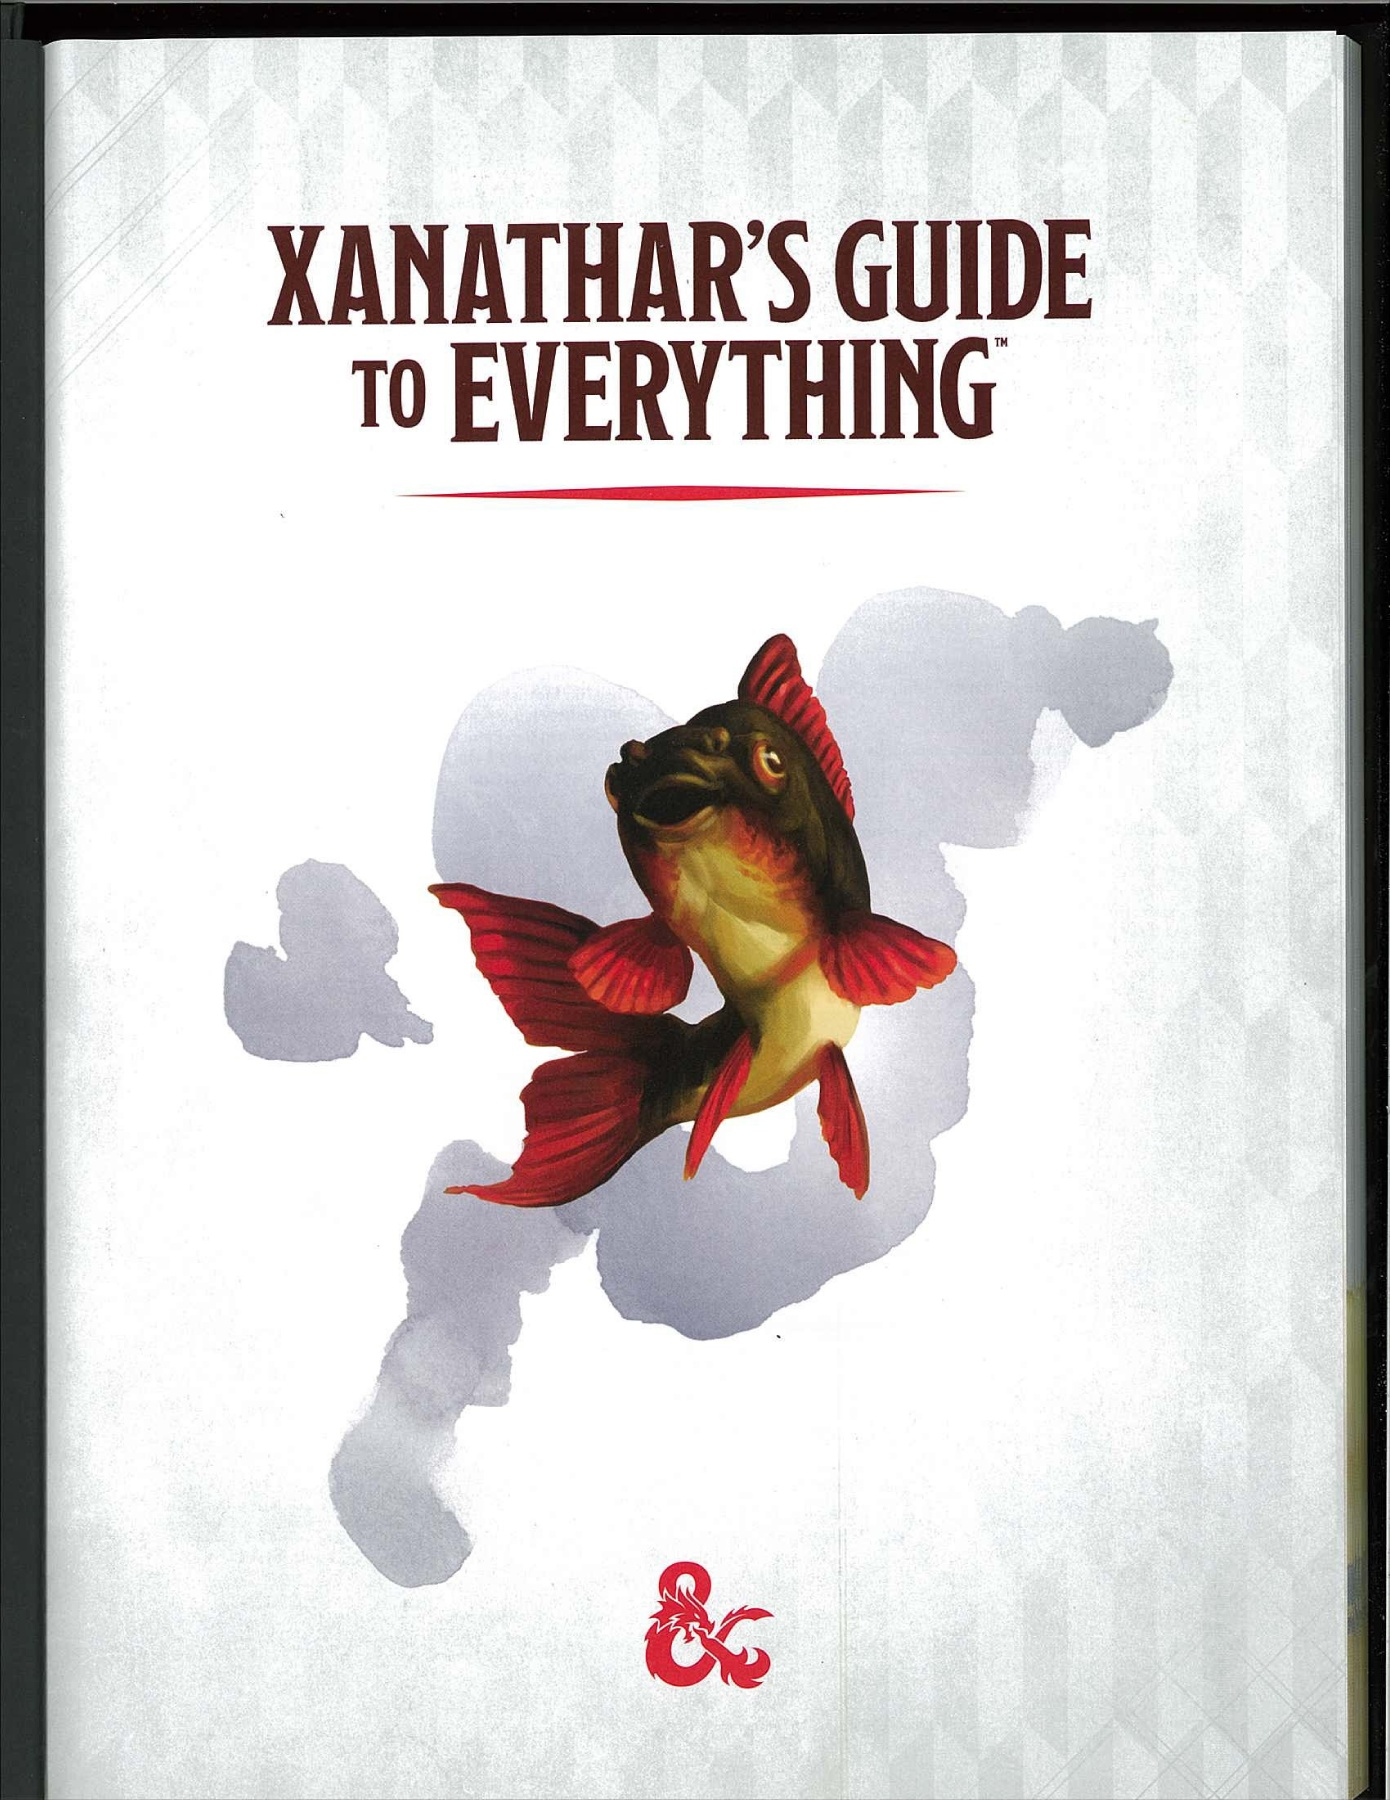 Xanathar's Guide To Everything | AnyFlip